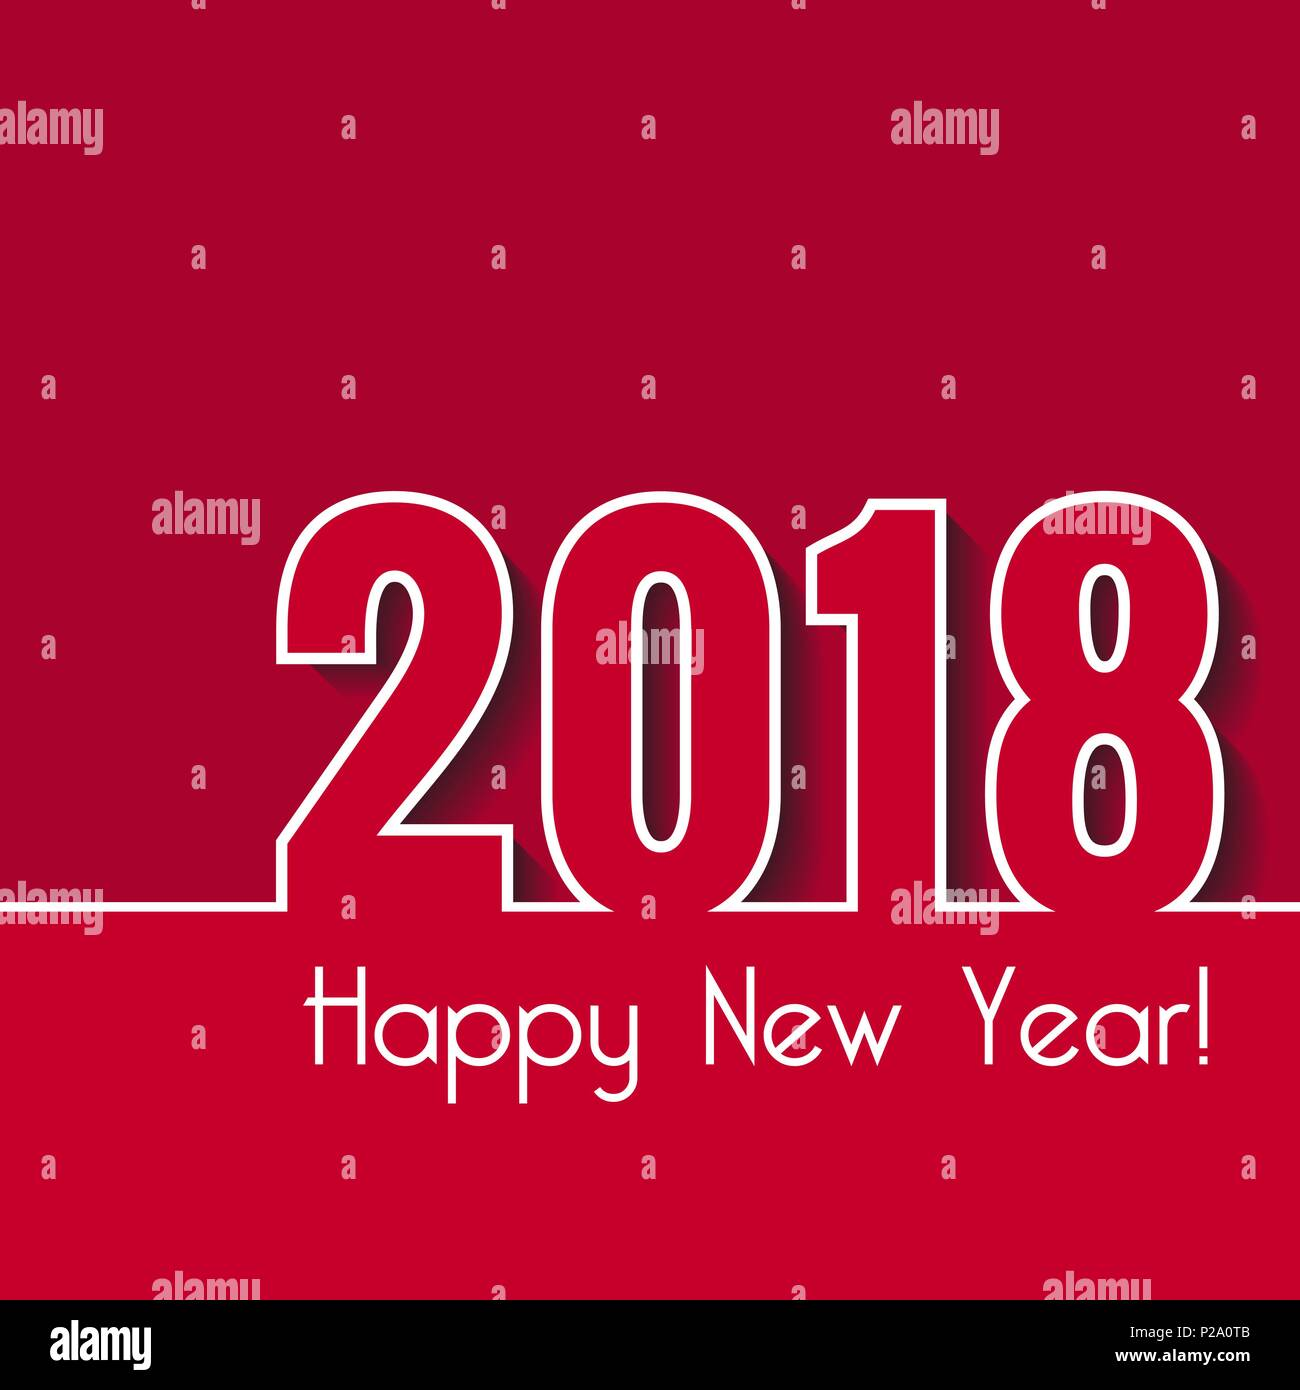 happy new year 2018 creative greeting card template over red background